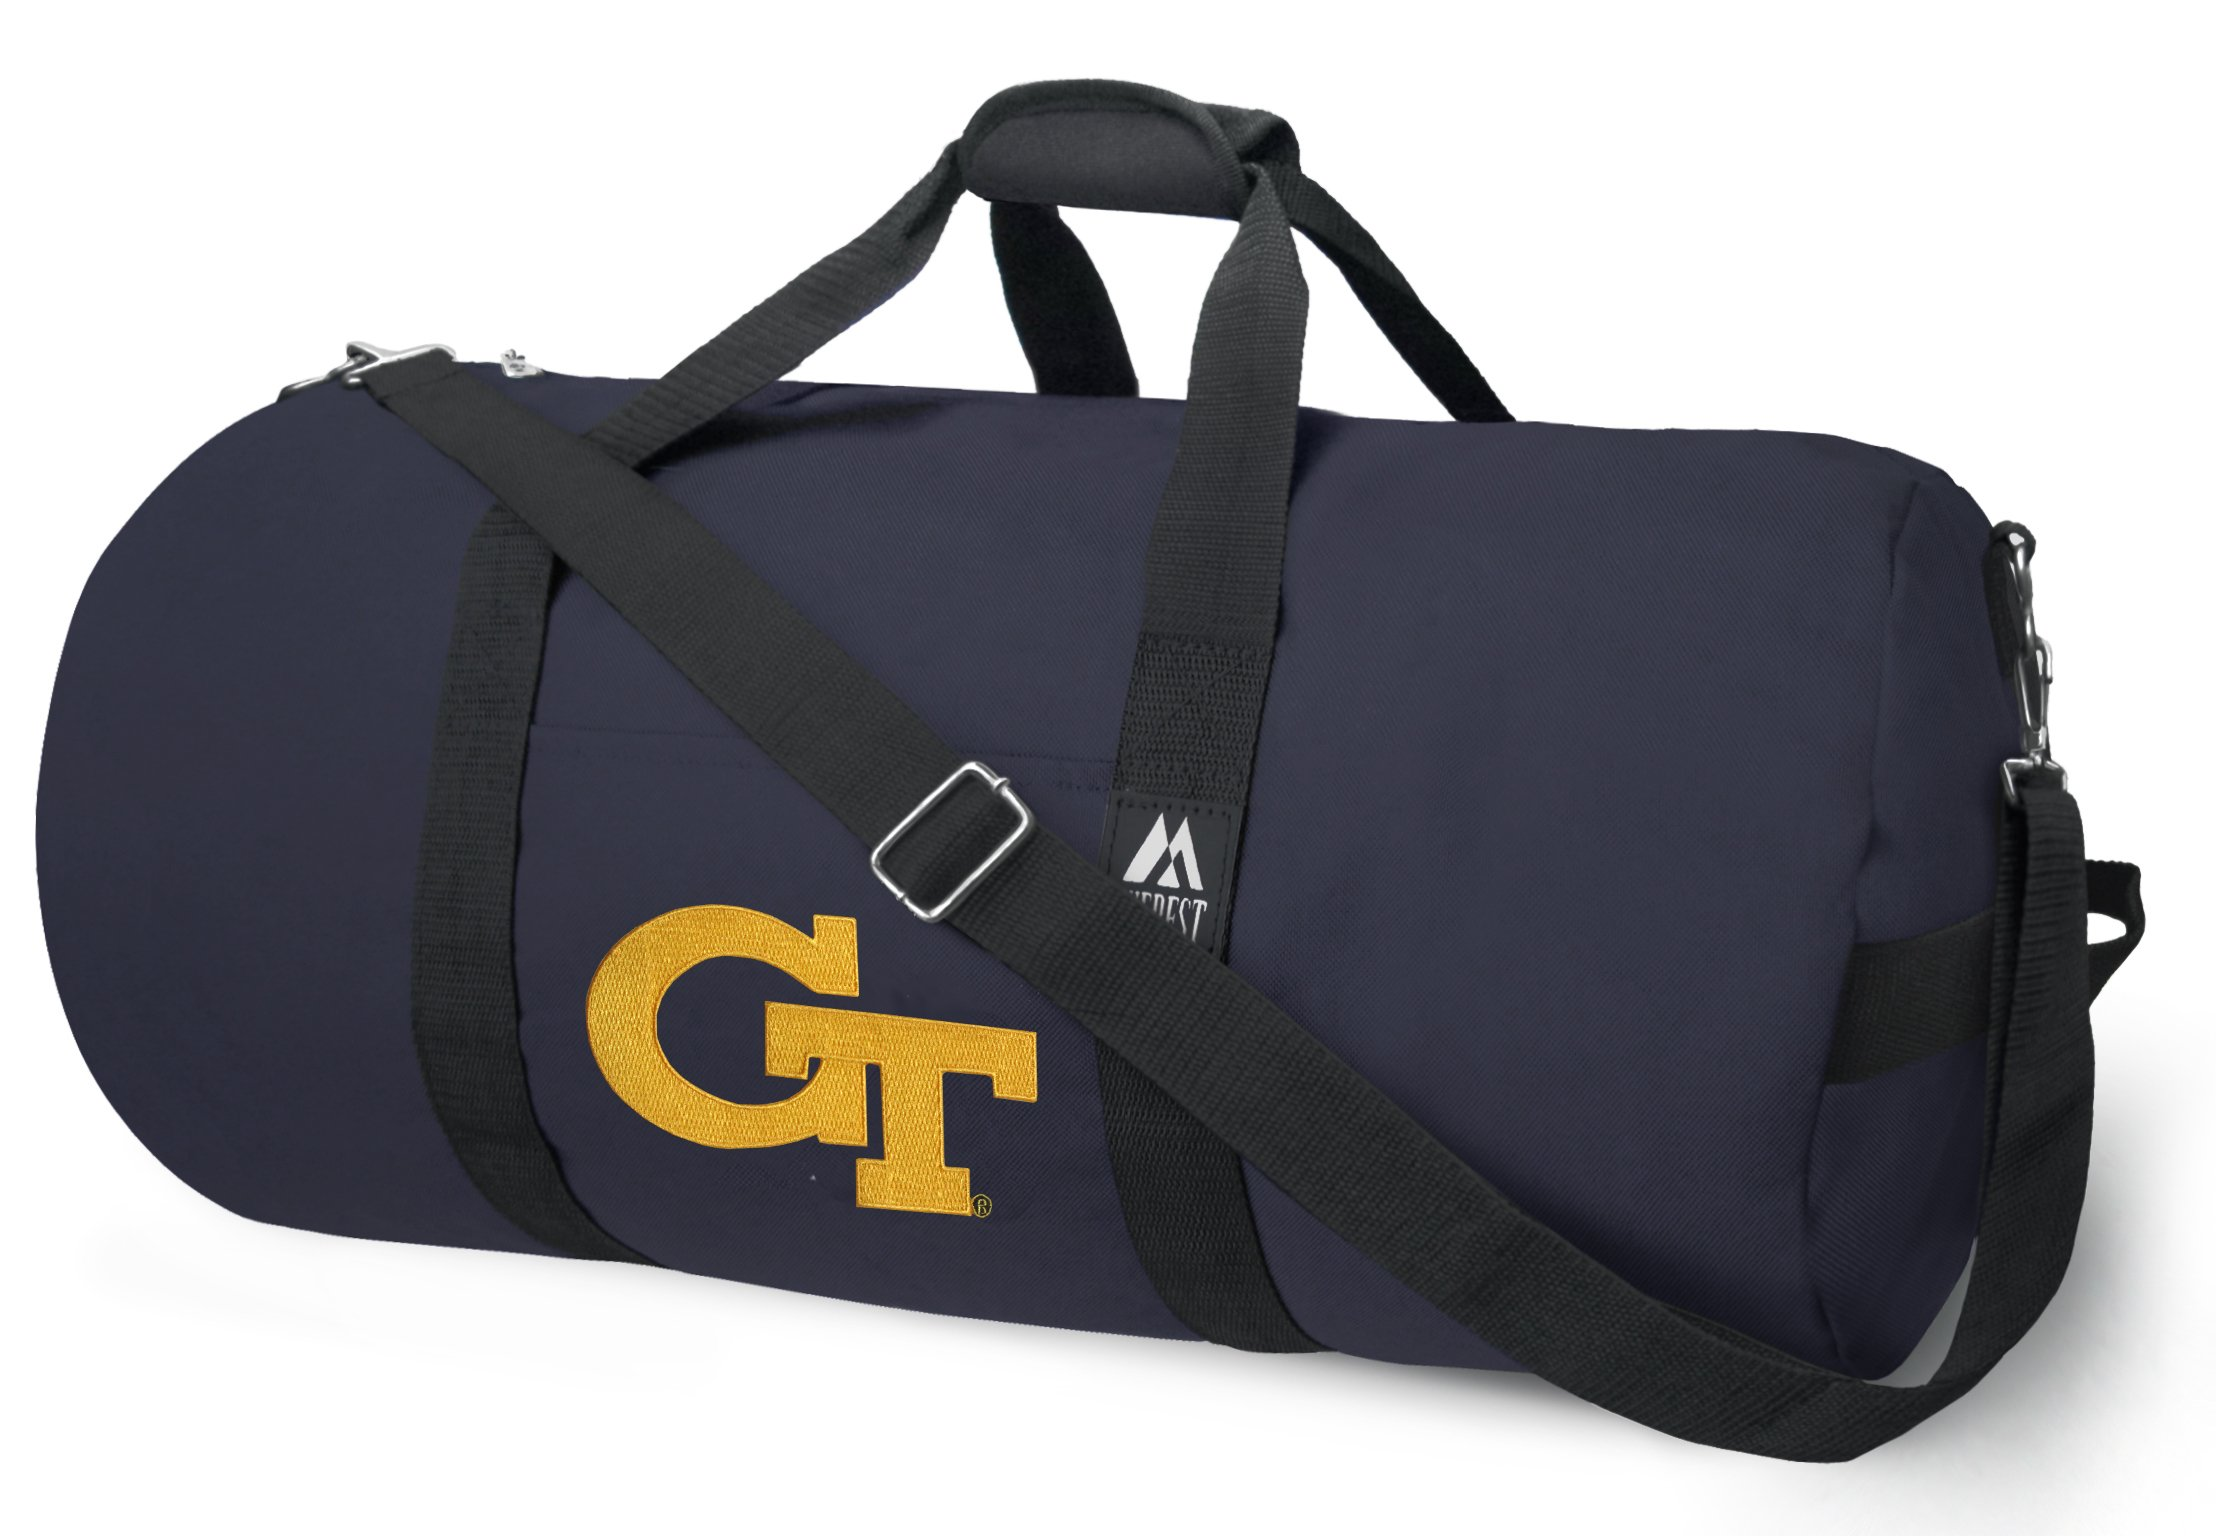 OFFICIAL Georgia Tech Duffle Bag or GT Yellow Jackets Gym Bags Suitcases